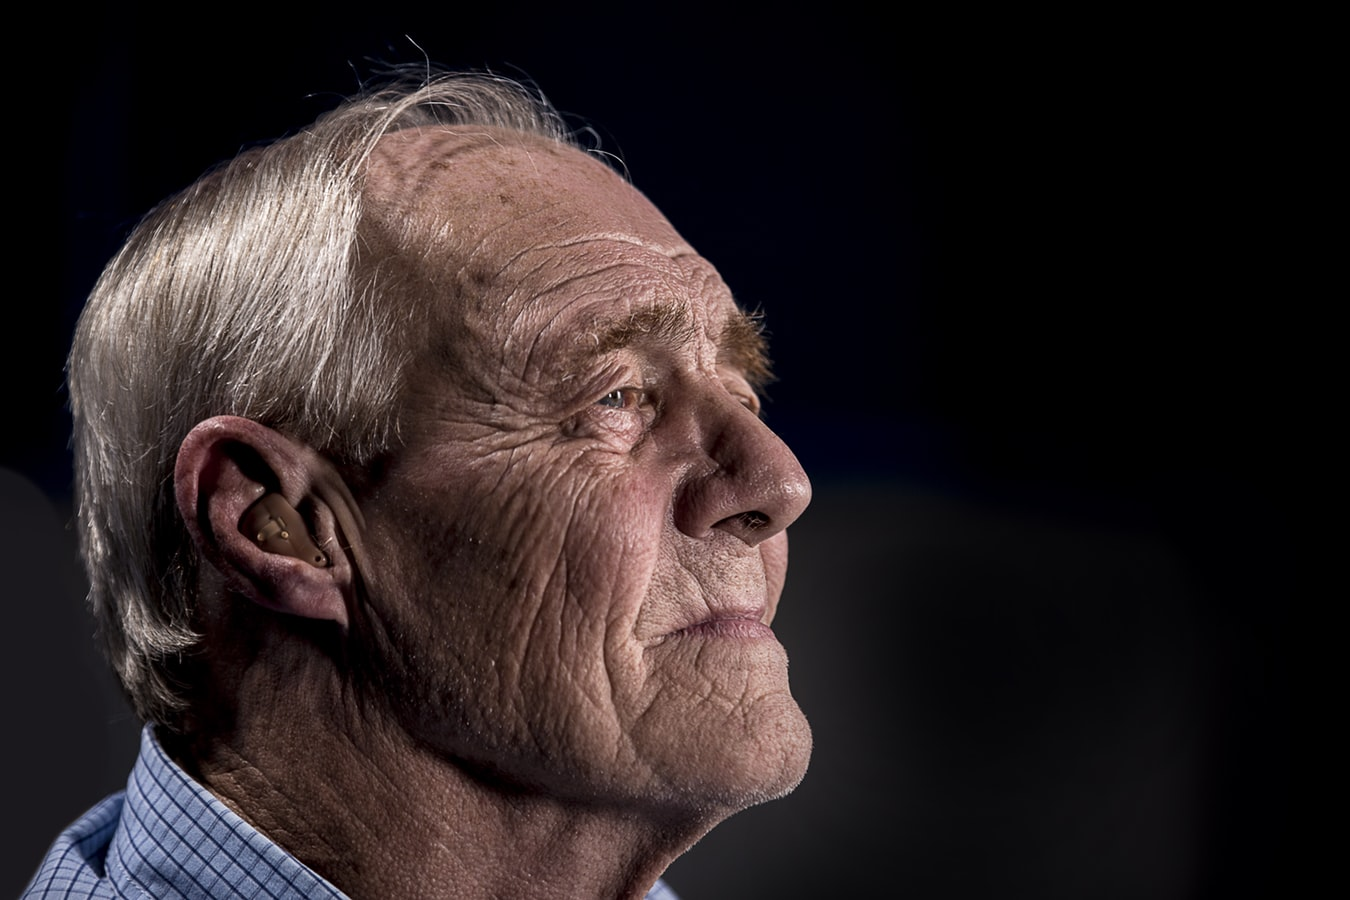 An older man wearing a hearing aid because he suffers from hearing loss